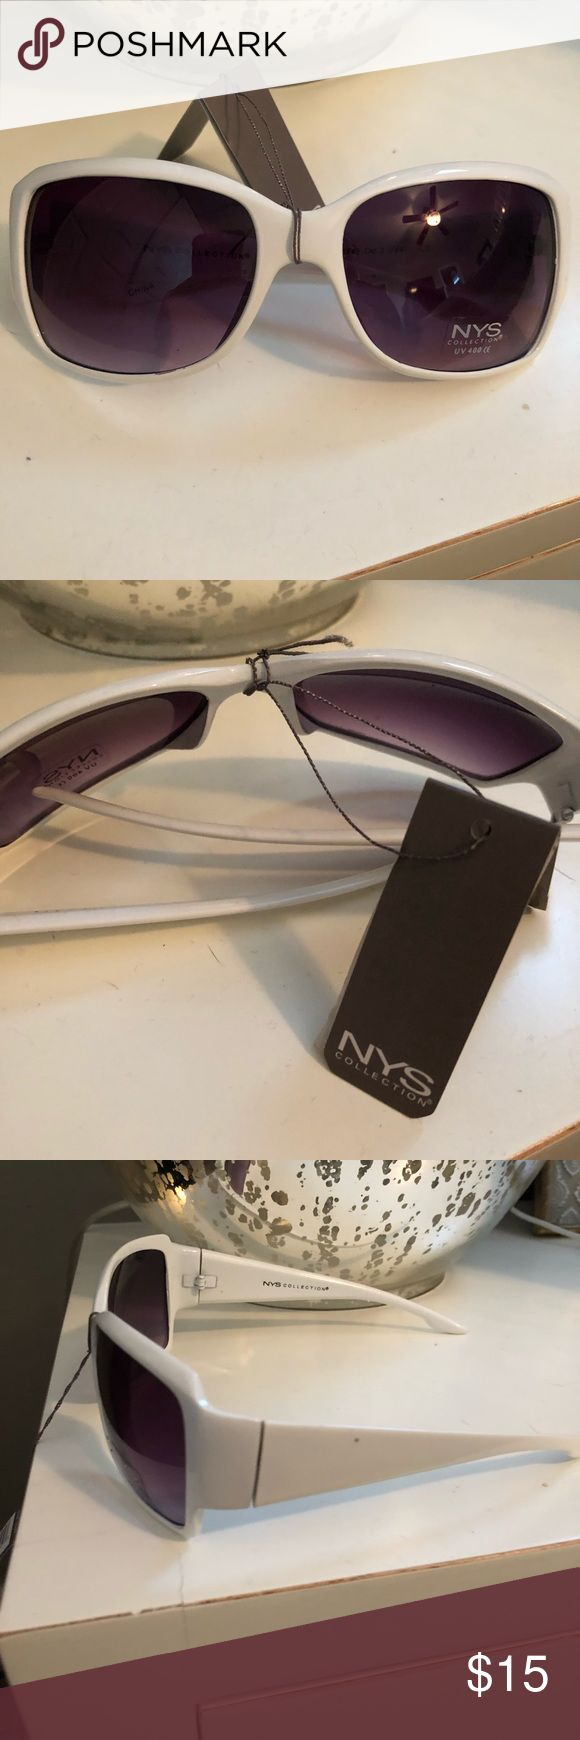 NYS Collection White Sunglasses. NWT NWT white NYS sunglasses. Style: New York. Come with a drawstring case. NYS Accessories Glasses